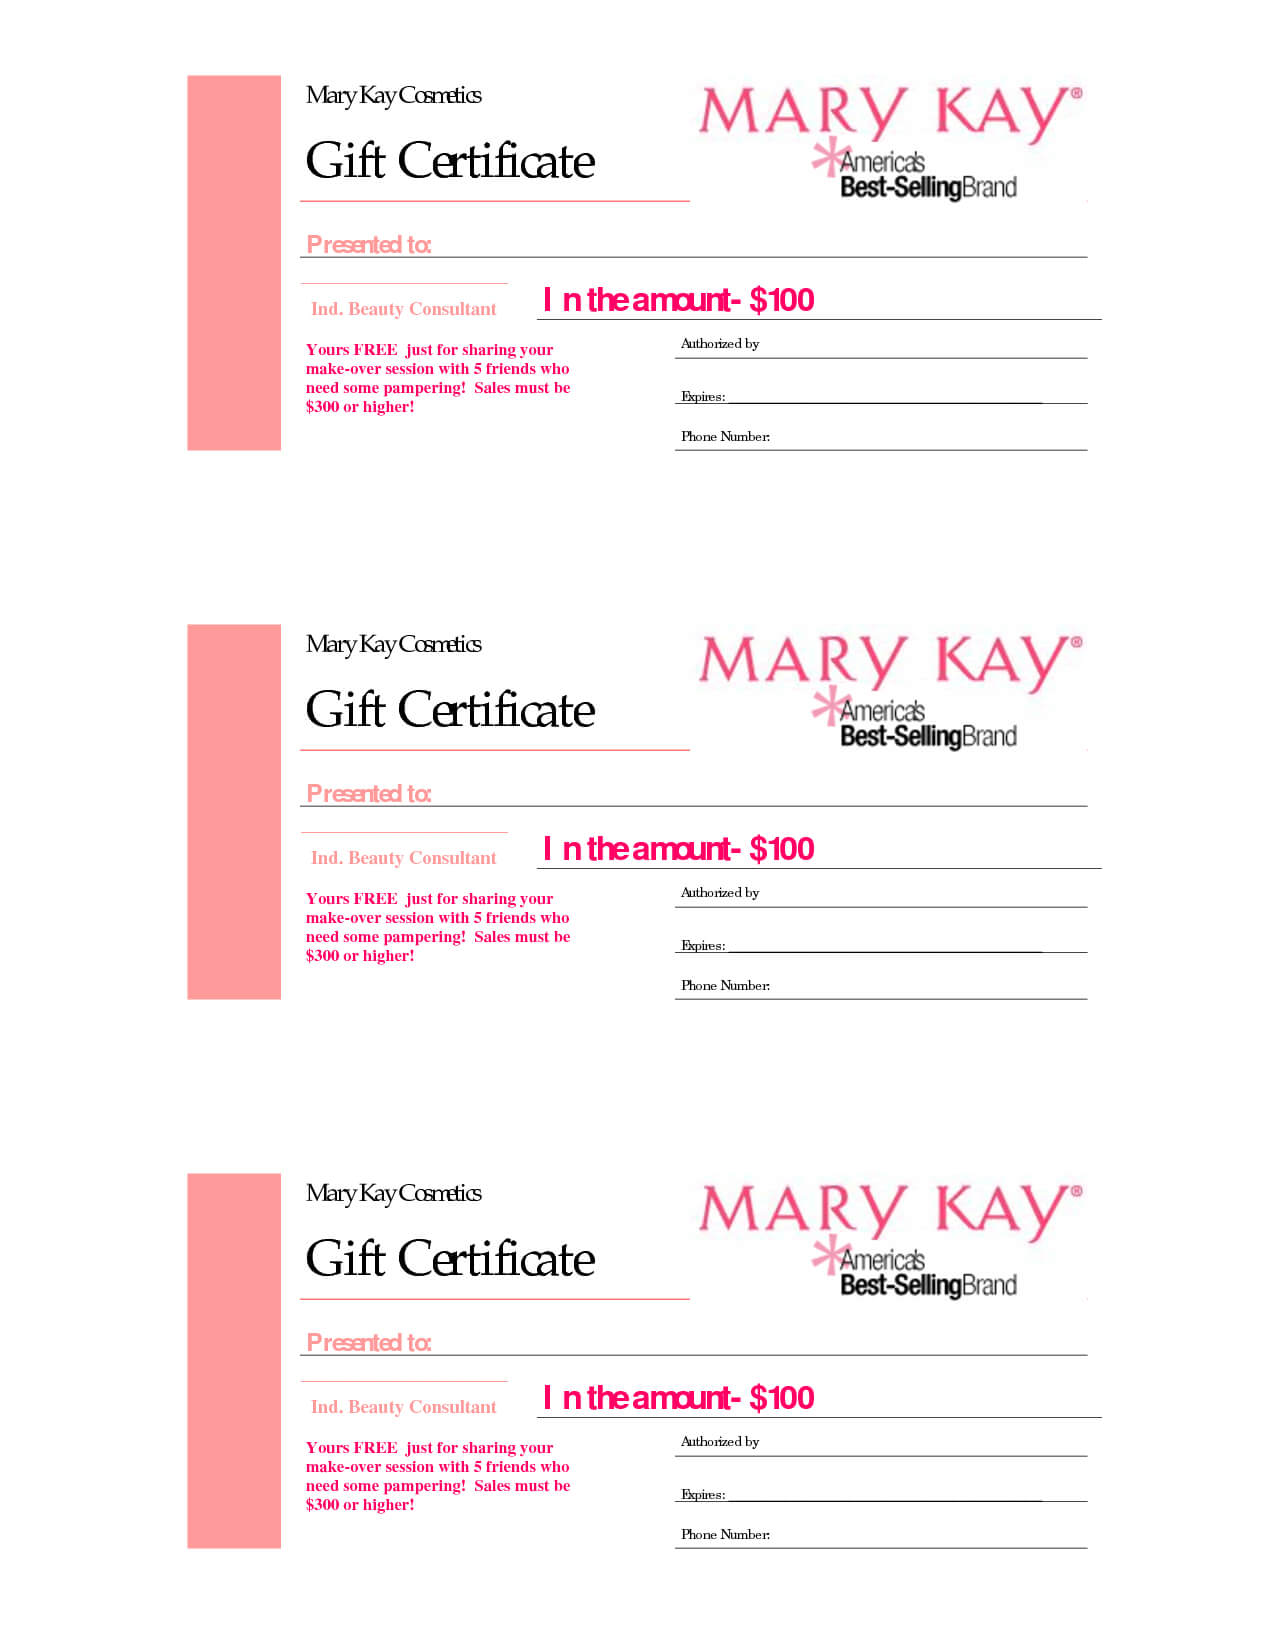 Gift Certificates | Mary Kay Gift Certificate! | Gift In Mary Kay Gift Certificate Template